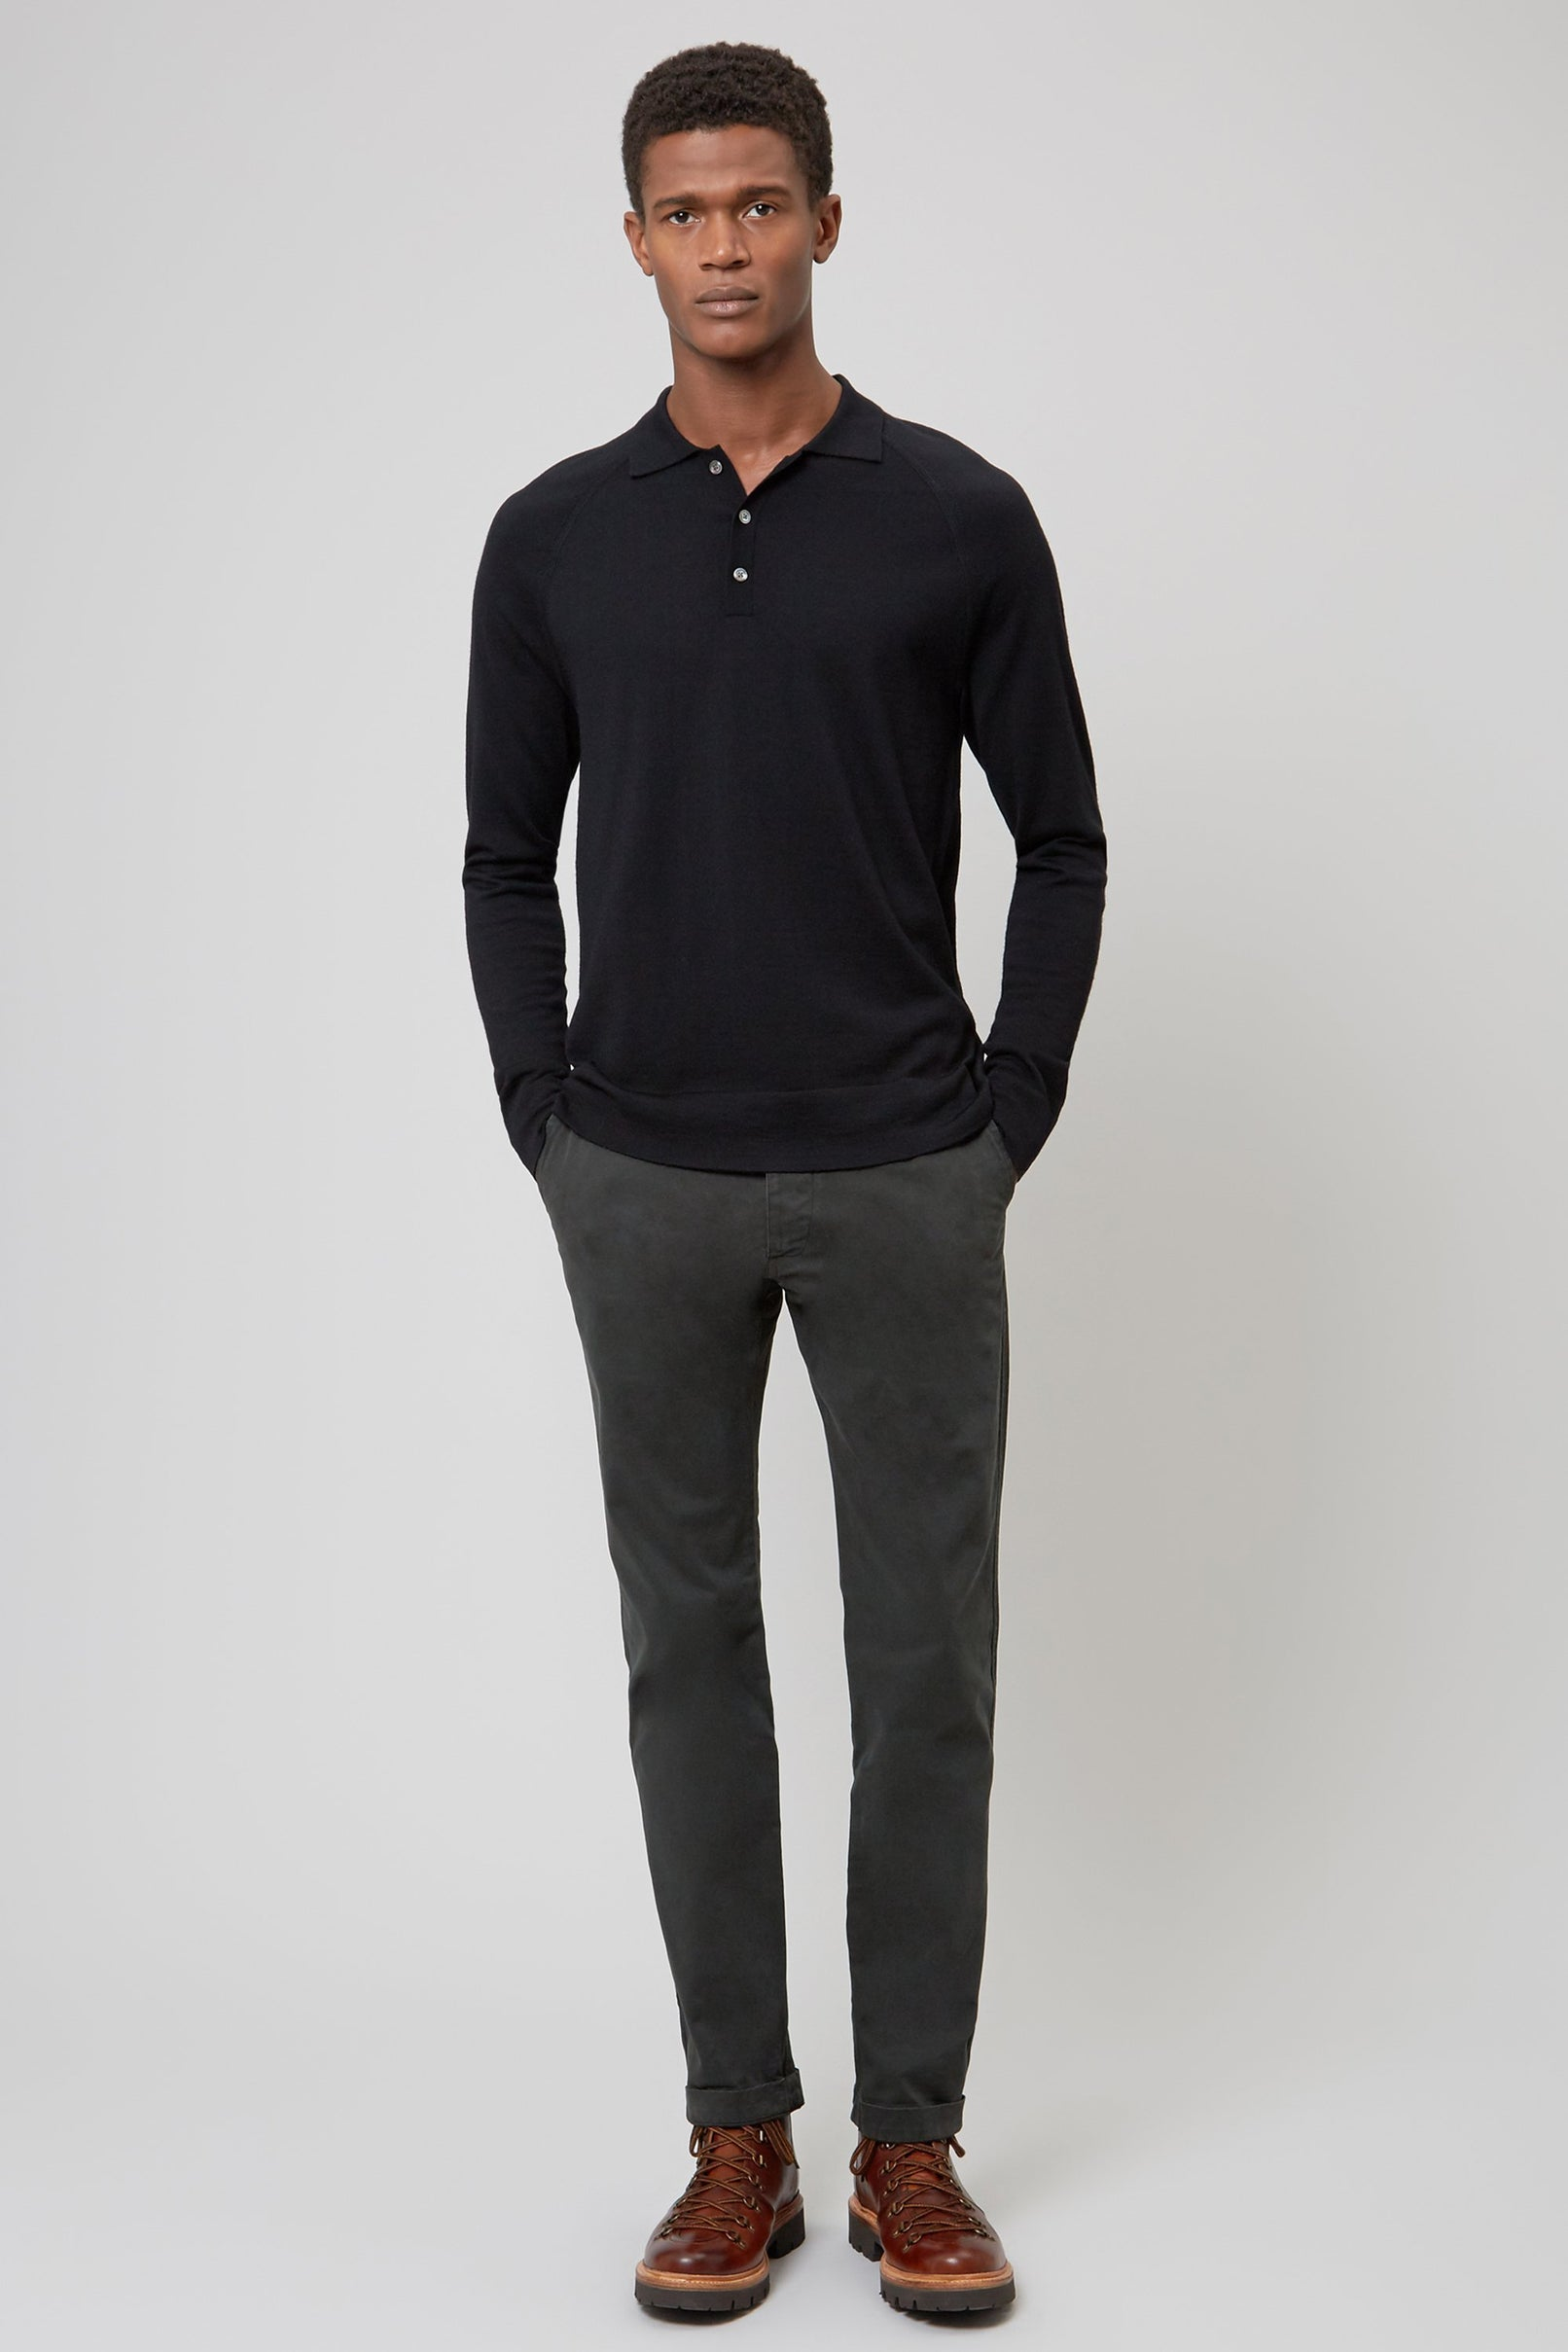 Black Merino Wool Raglan Polo